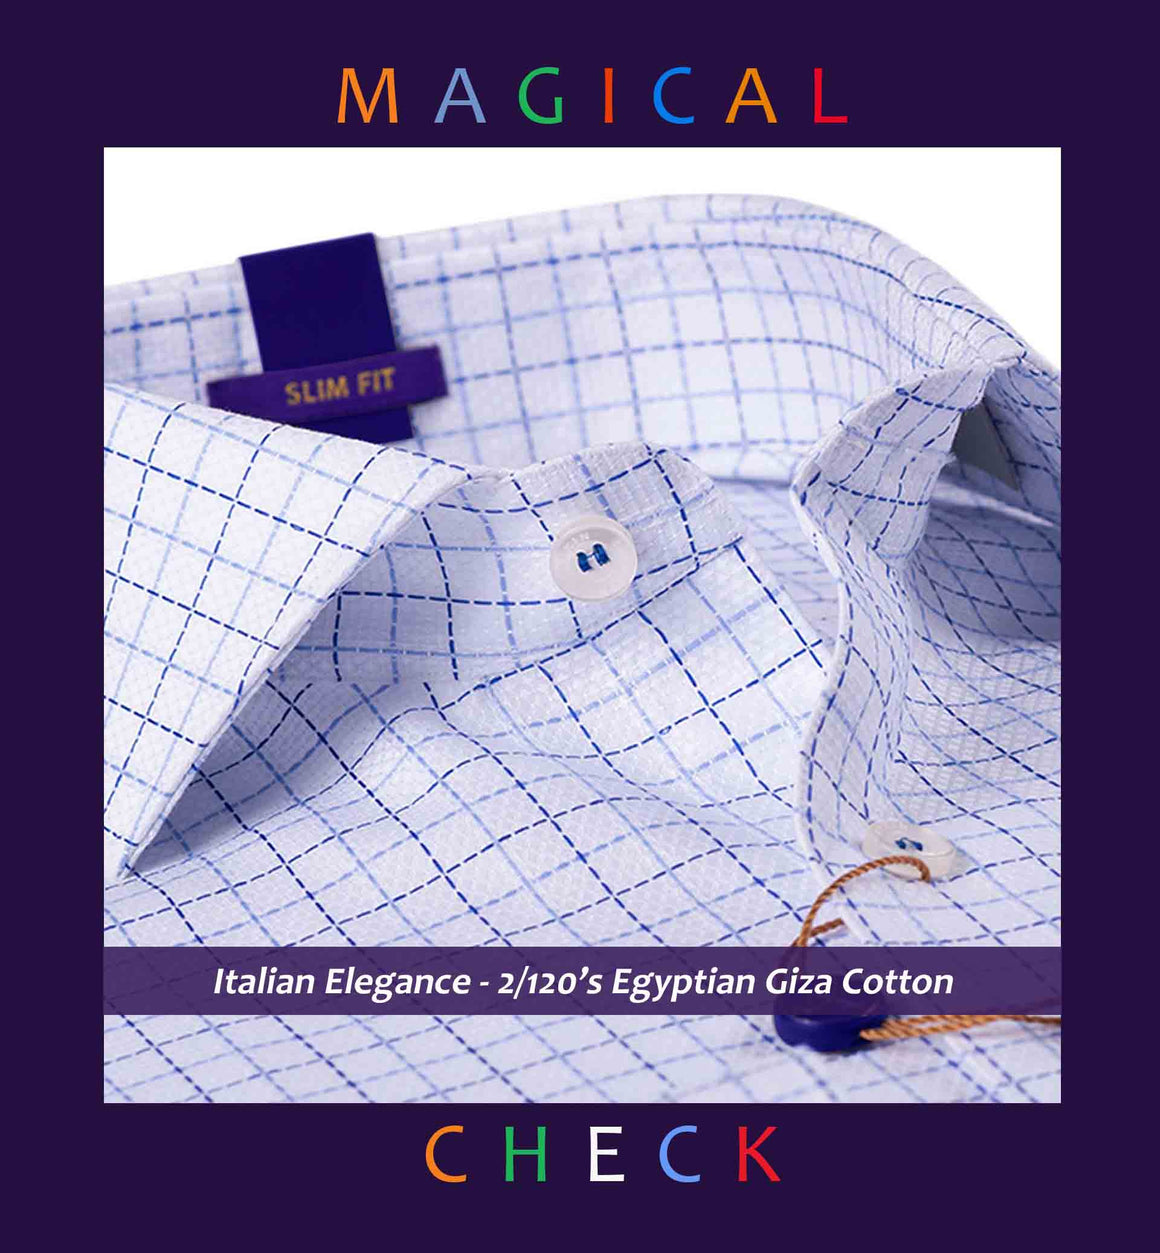 CUENCA- BLUE & WHITE MAGICAL CHECK- 2/120 EGYPTIAN GIZA COTTON